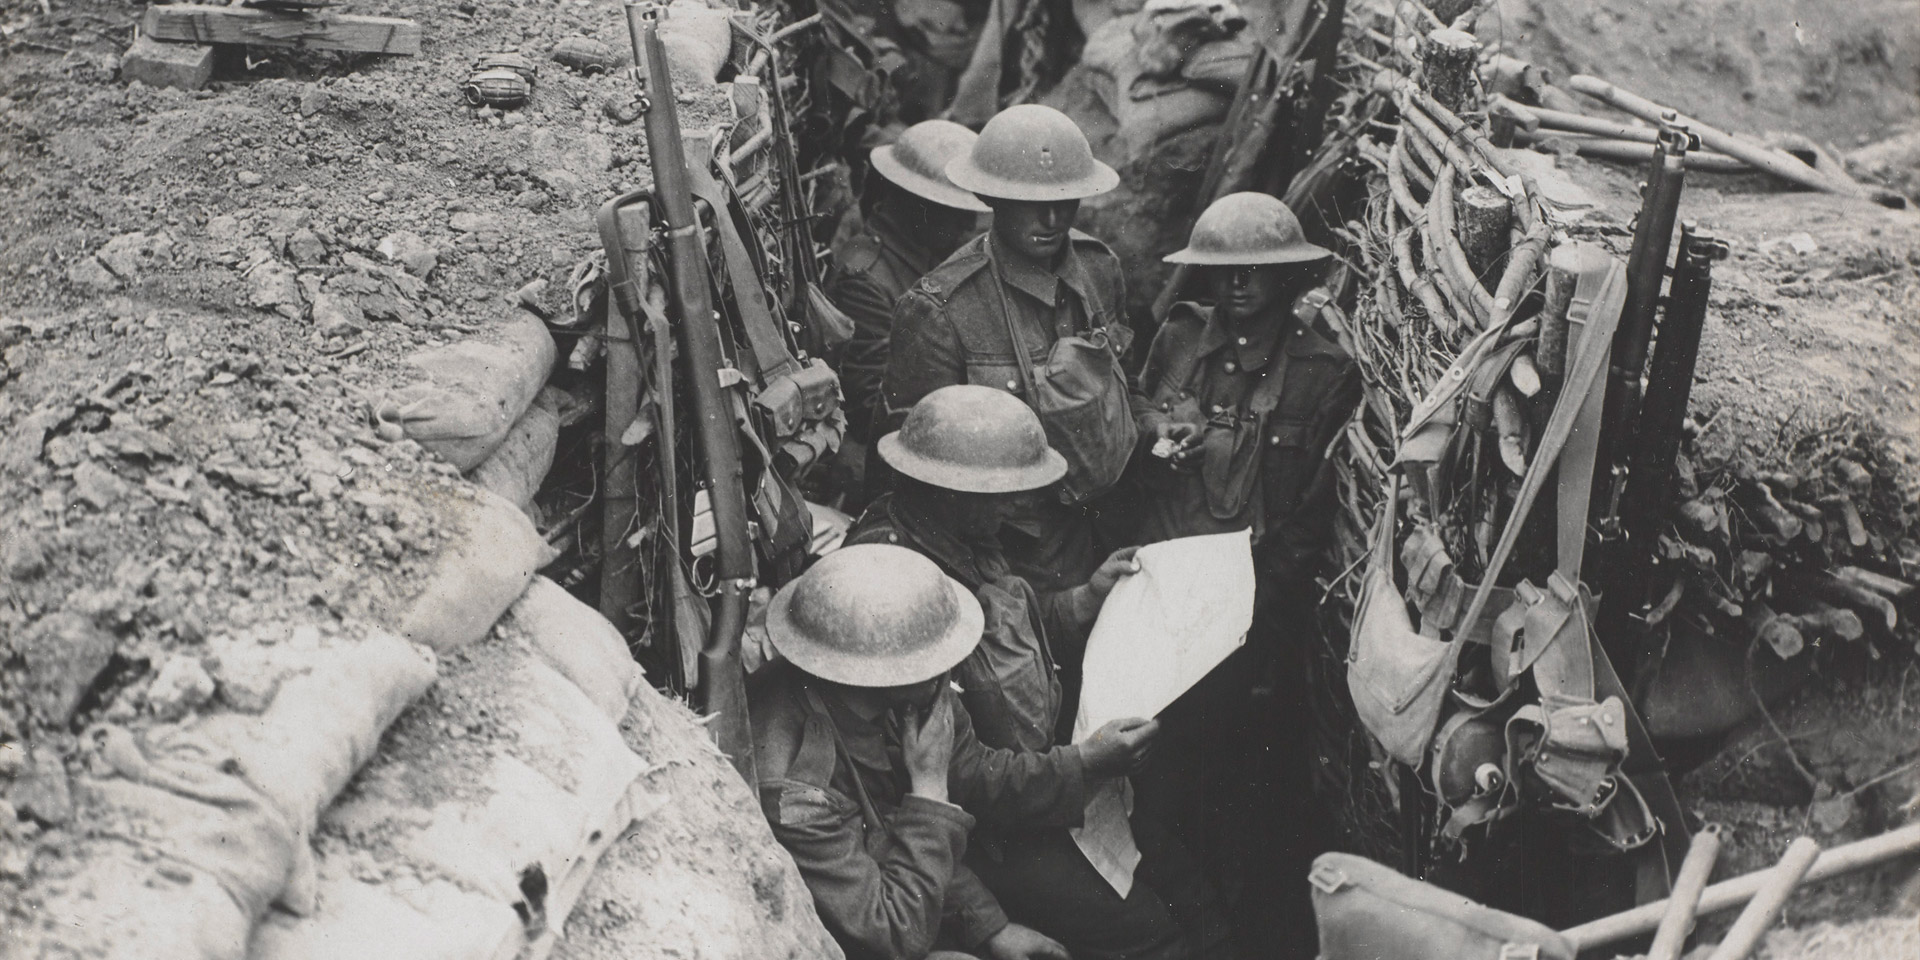 Reading a newspaper in the trenches, c1916